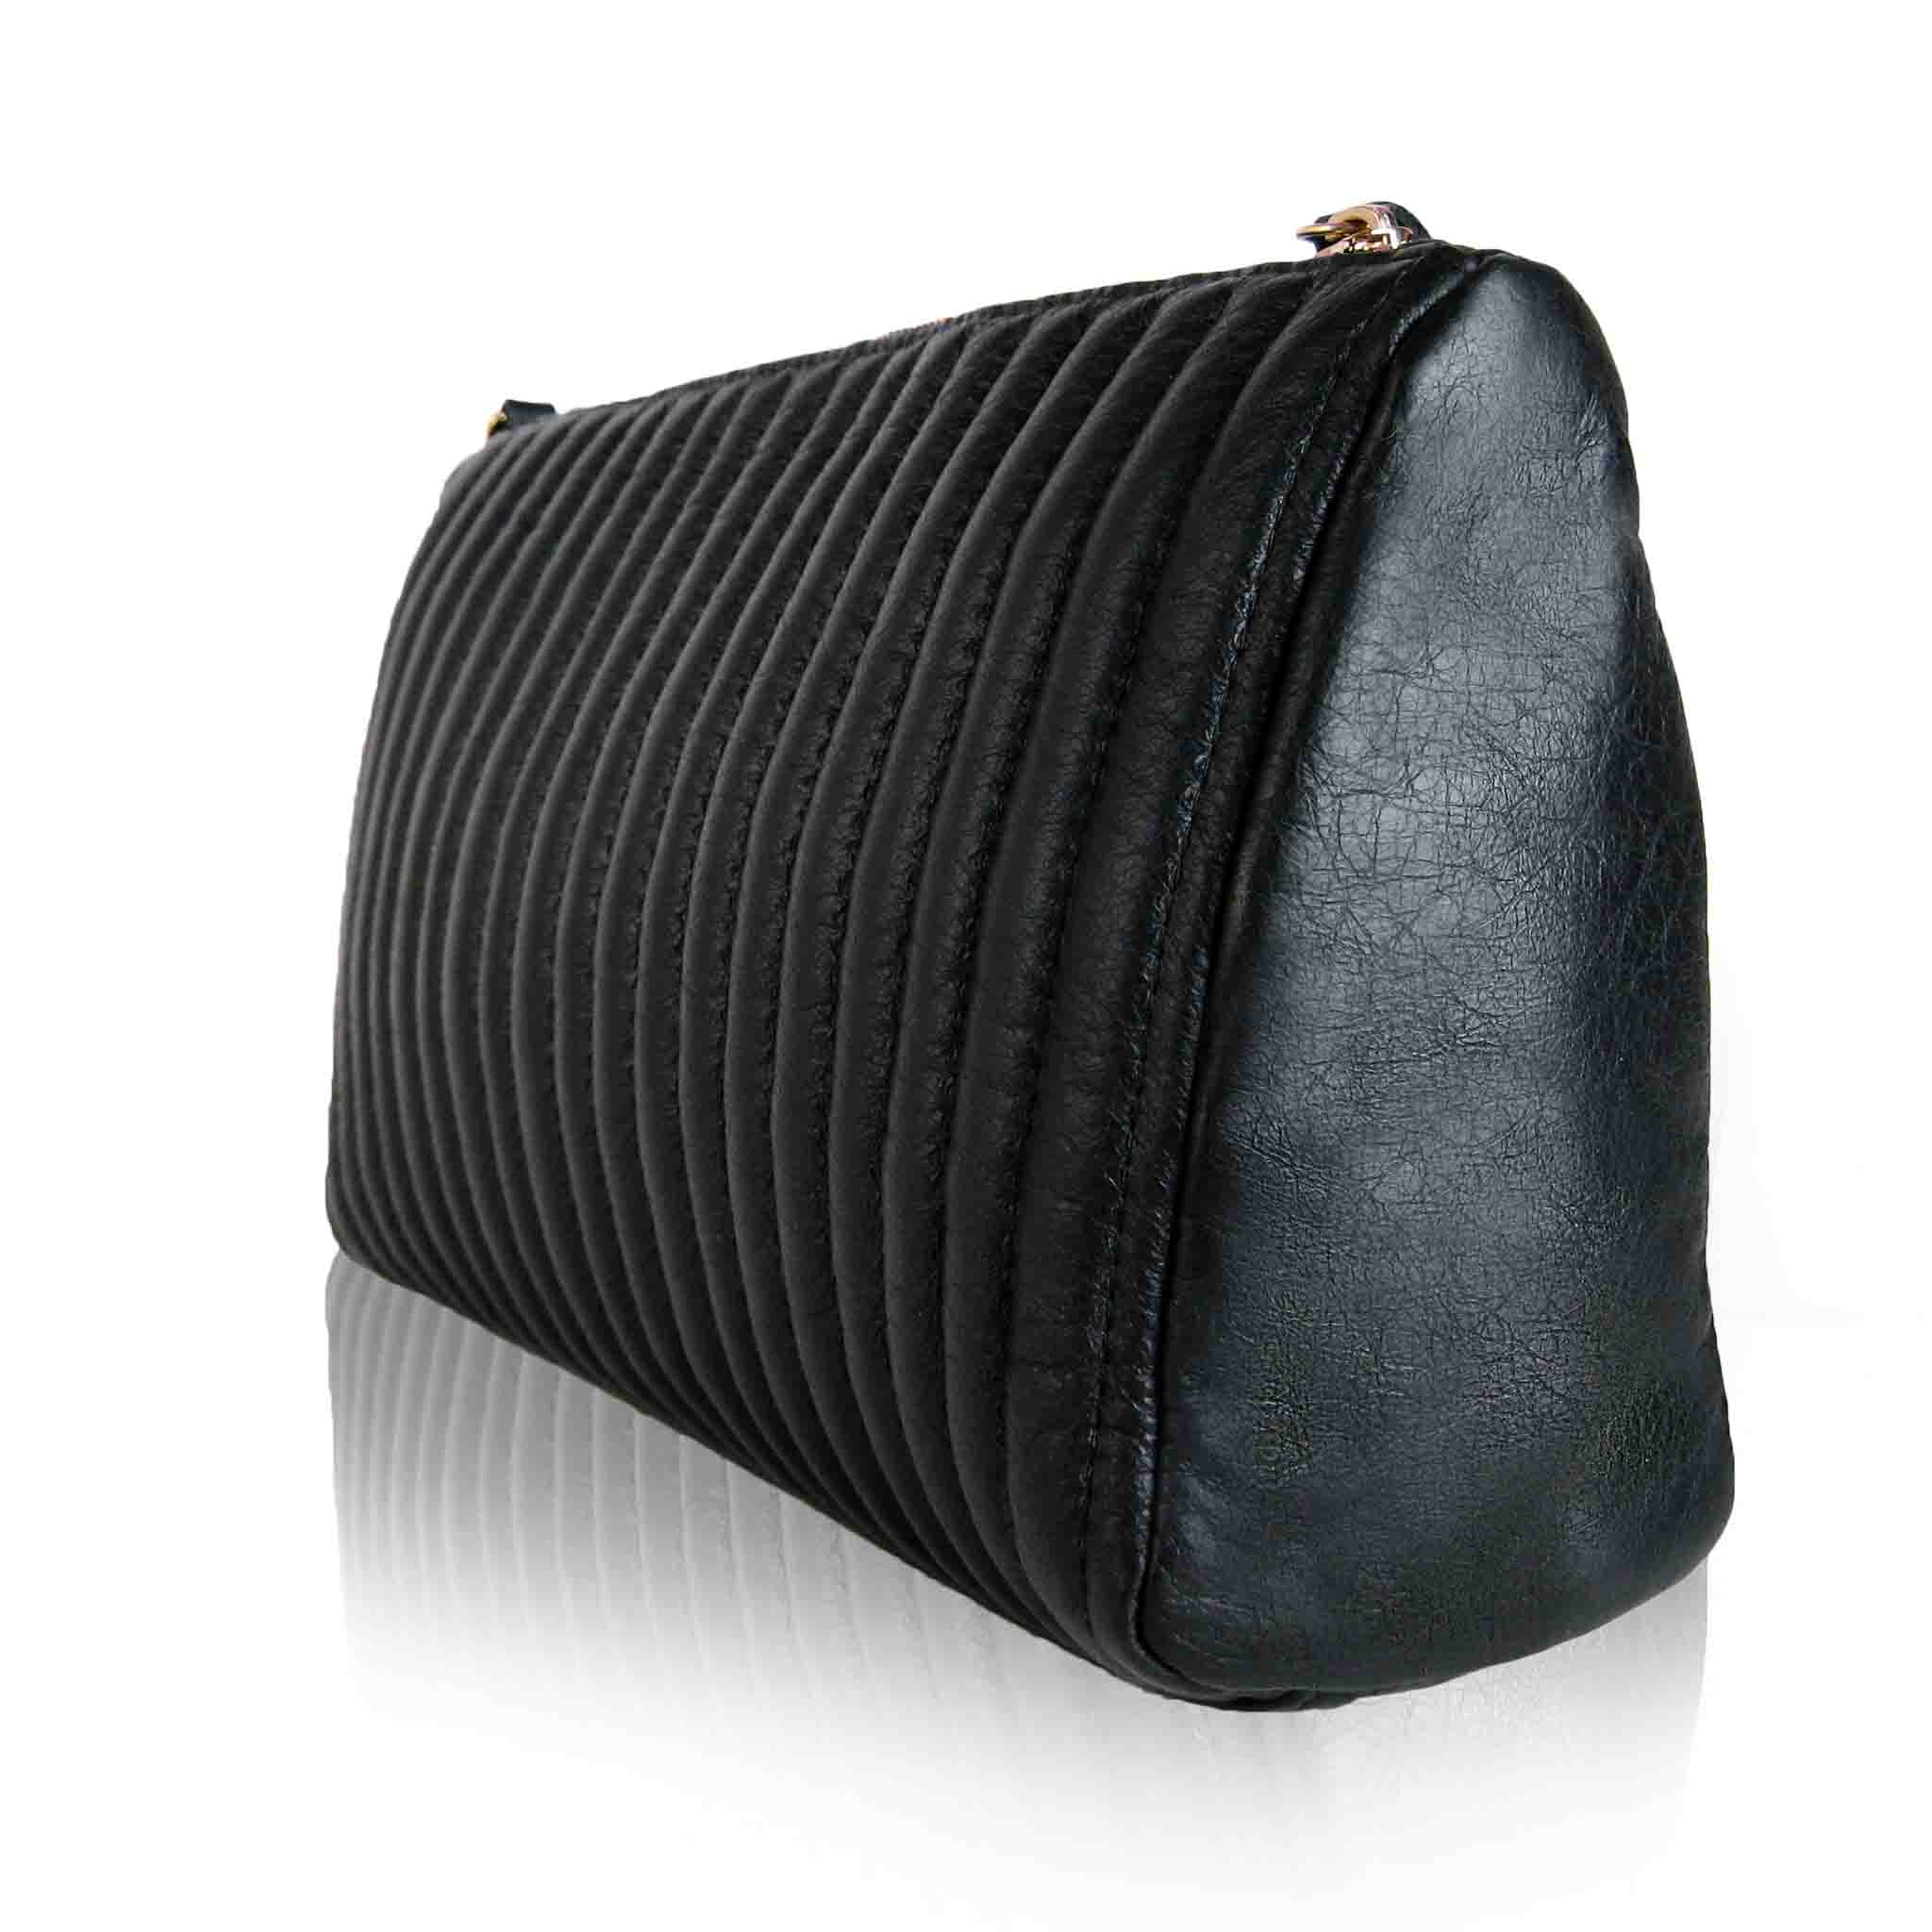 BLACK LEATHER SOFT CLUTCH WOMEN'S LEISTENA